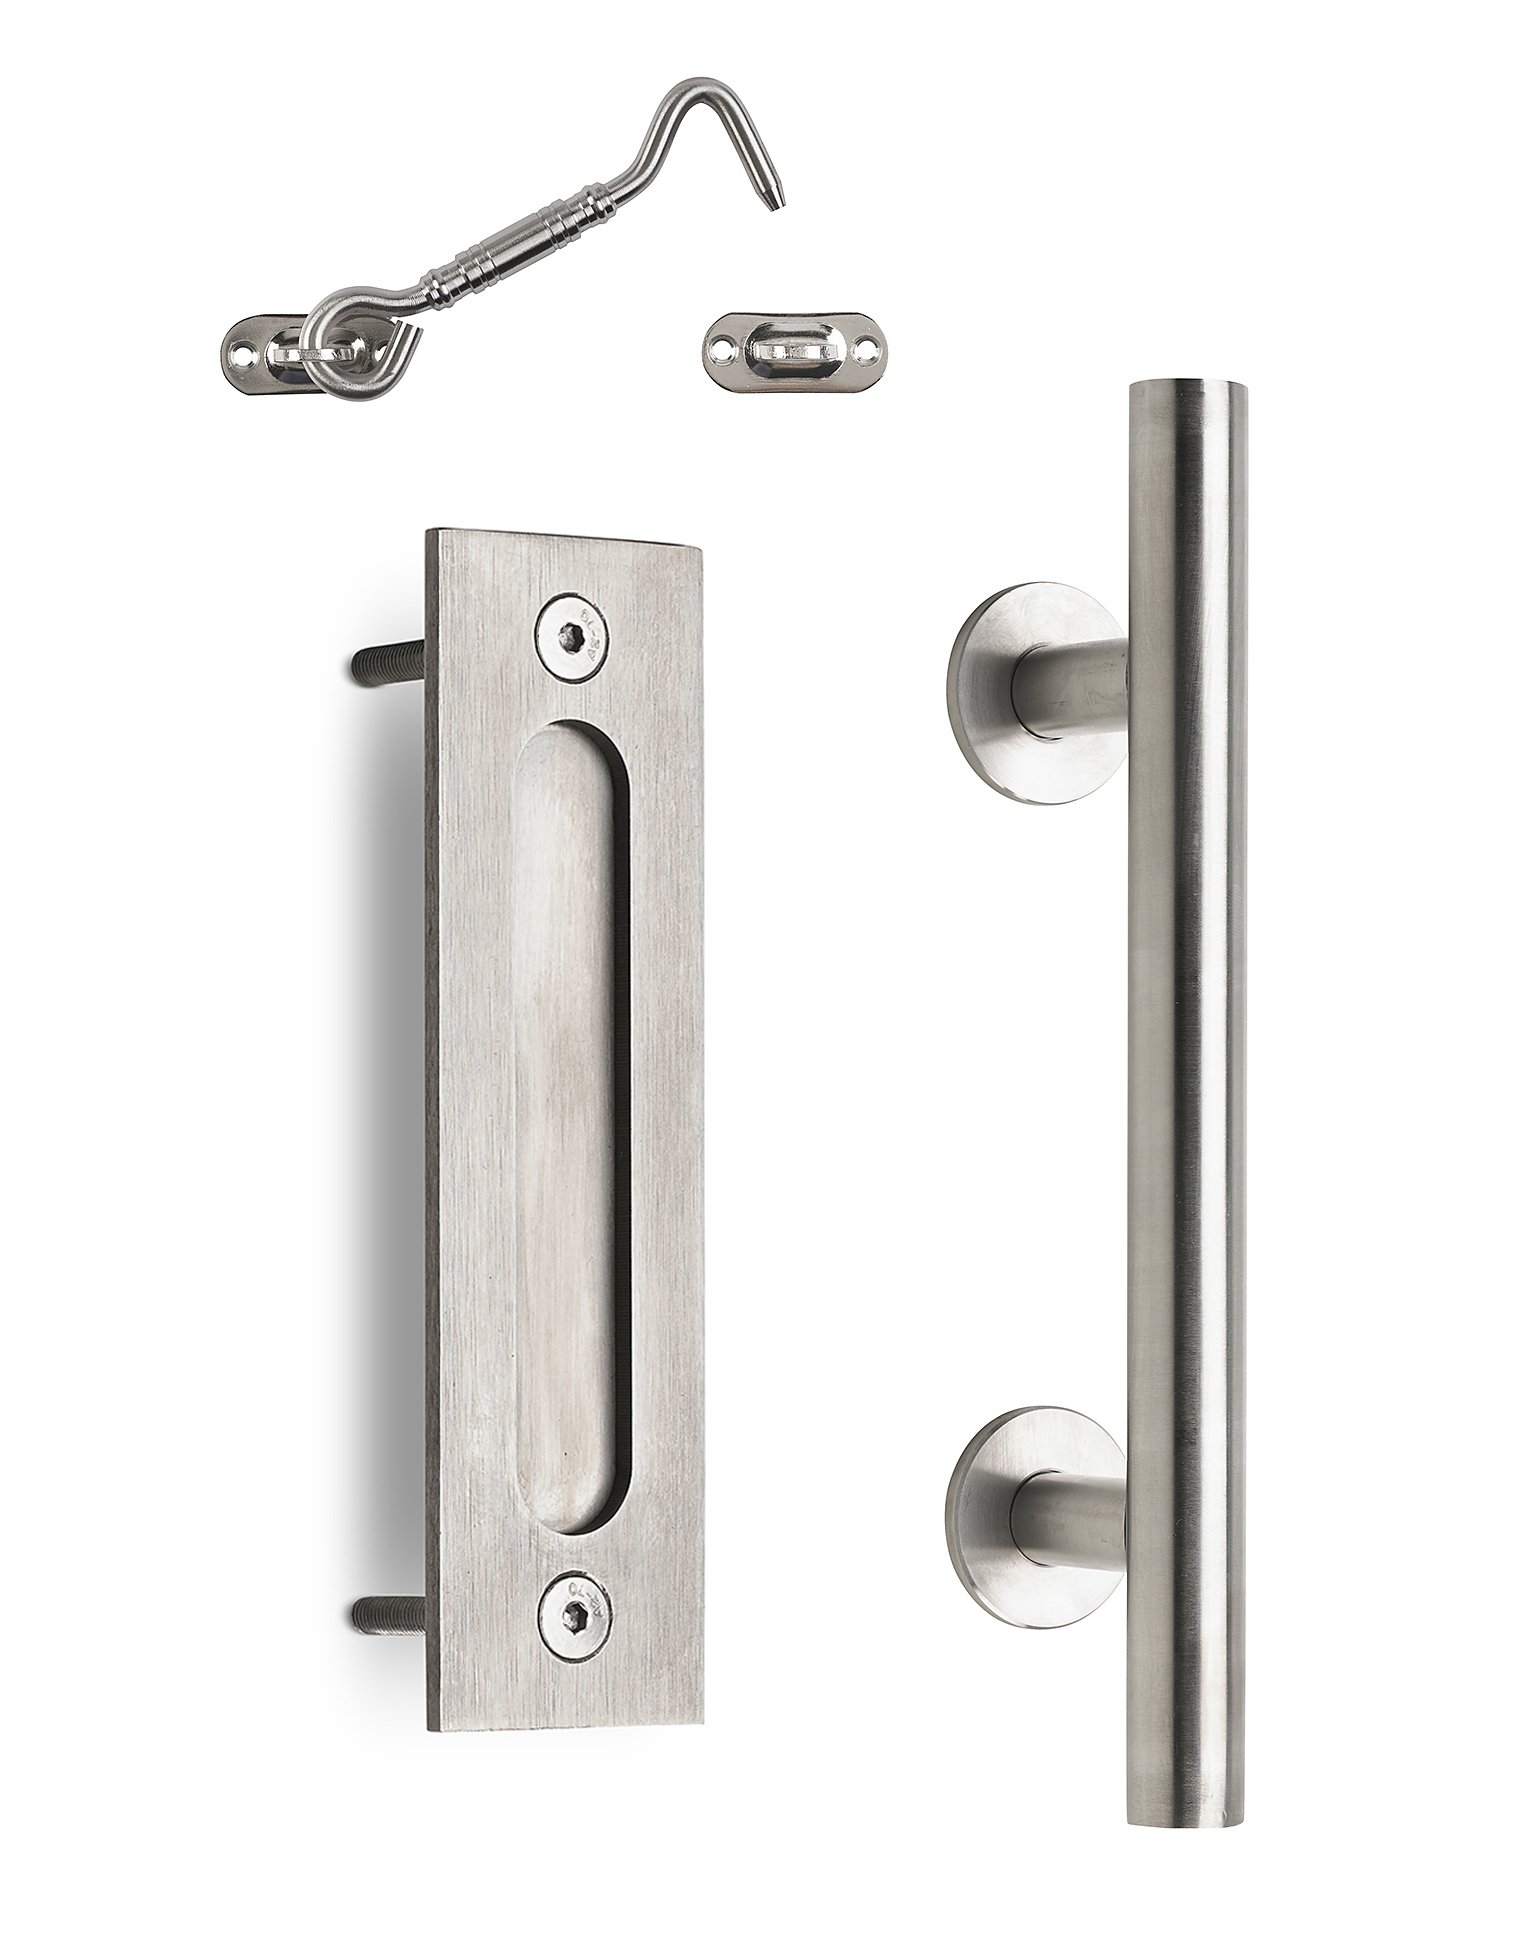 "Caldwell Co. Sliding Barn Door Handle Pull with Flush-Mount Plate & Cabin Hook Lock Heavy-Duty Modern Stainless Barn Door Hardware Set Strong 12"" Industrial Pull & Privacy Latch"